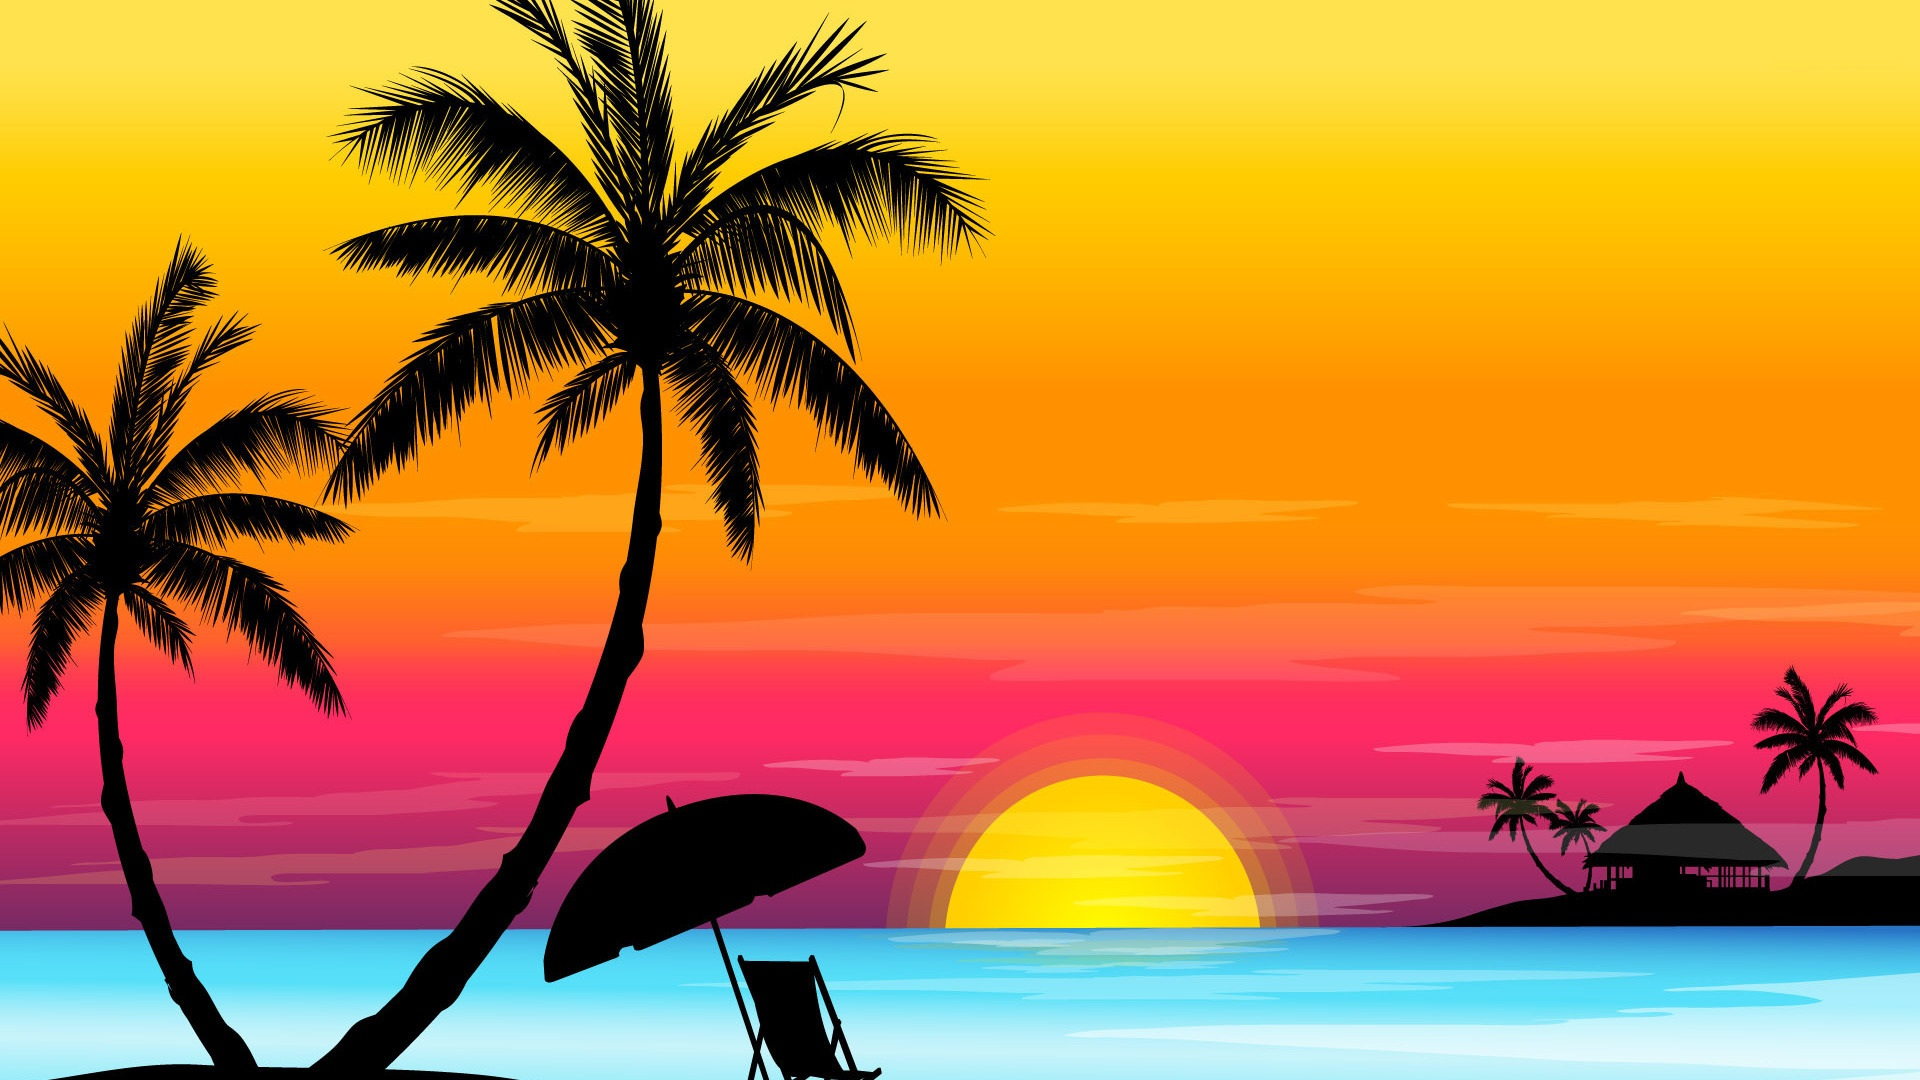 sunset beach drawing at getdrawings | free for personal use